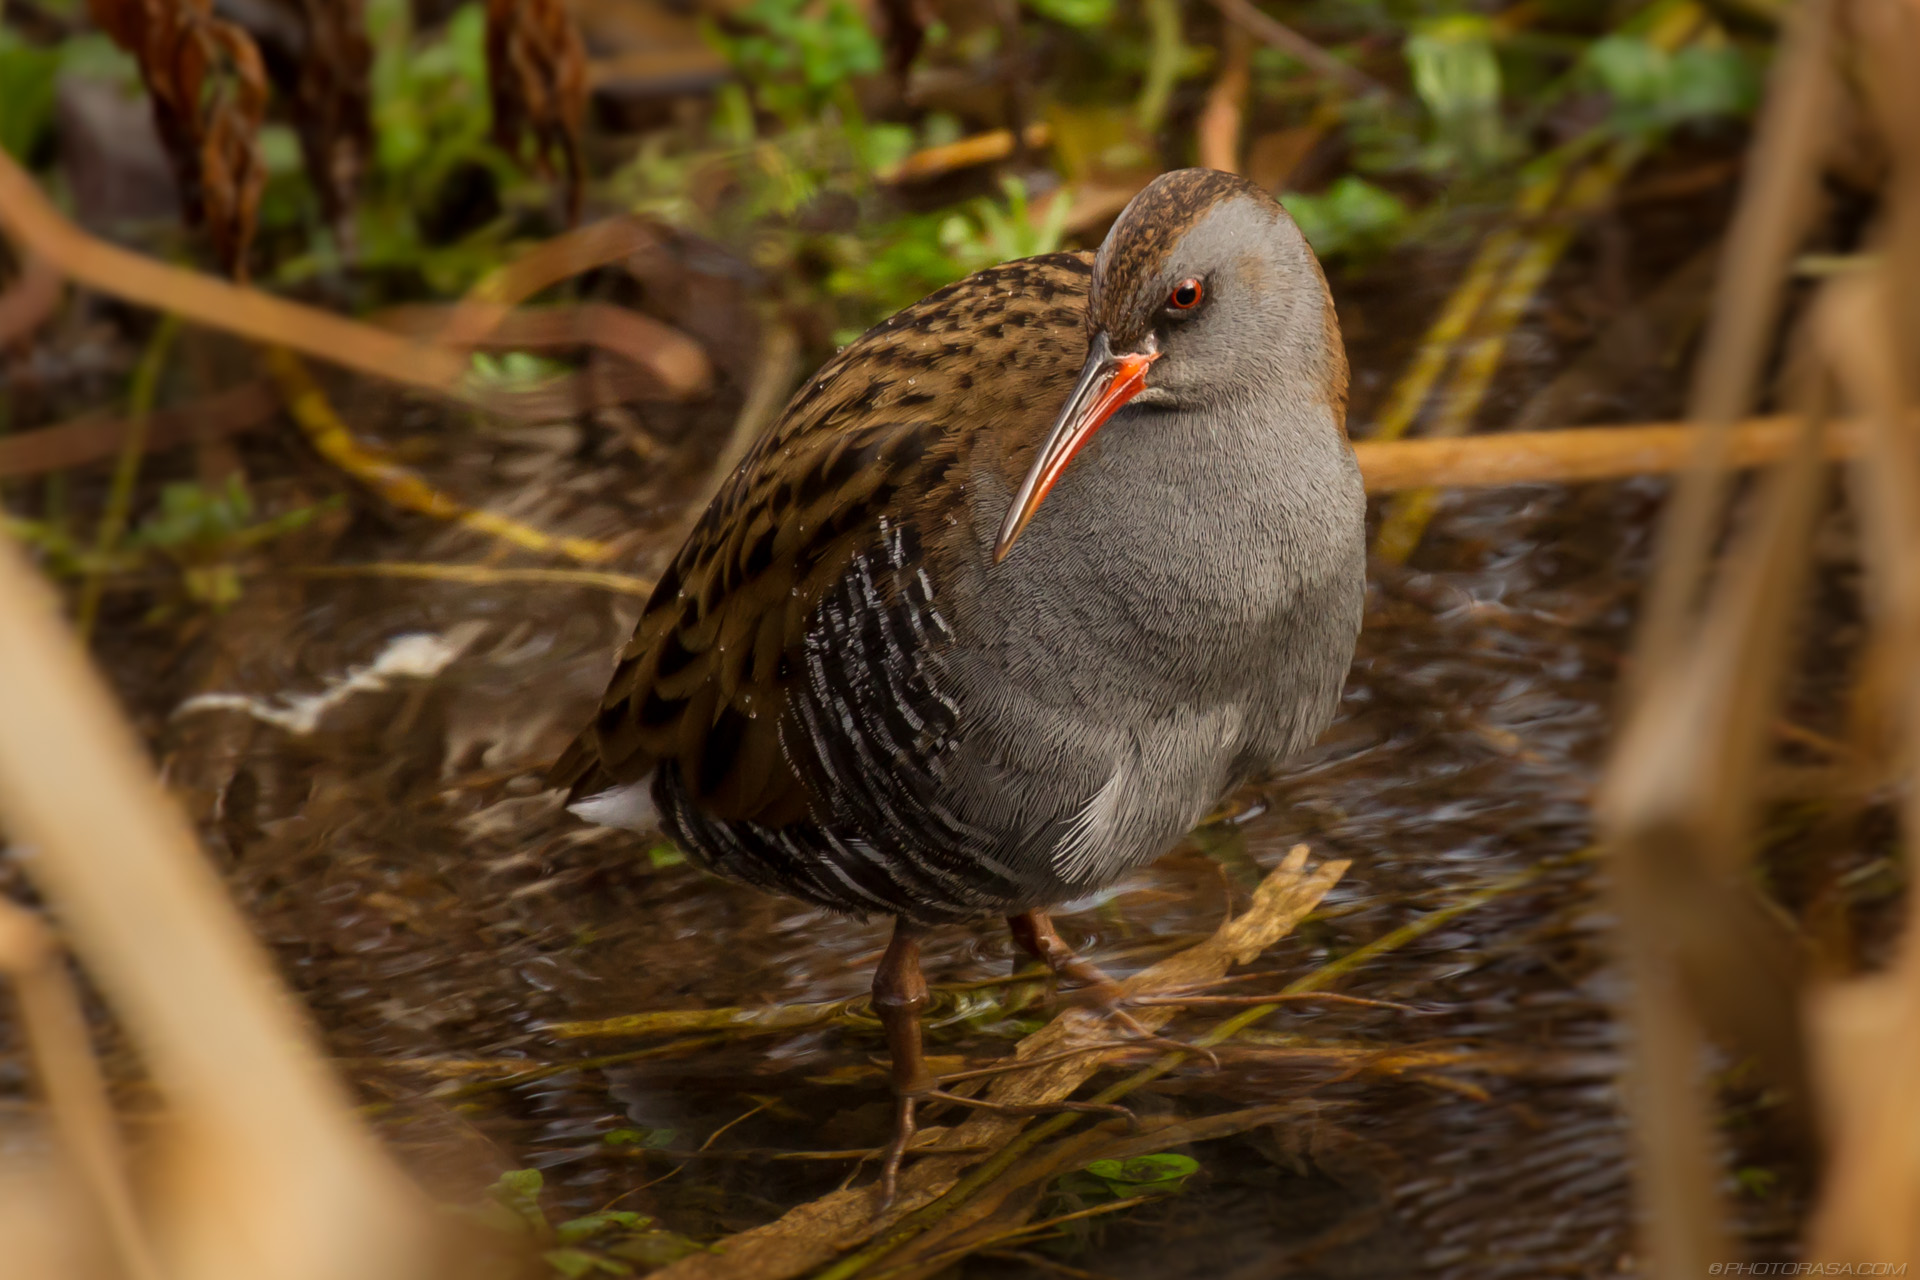 https://photorasa.com/water-rail-by-the-stream/long-beaked-water-rail/